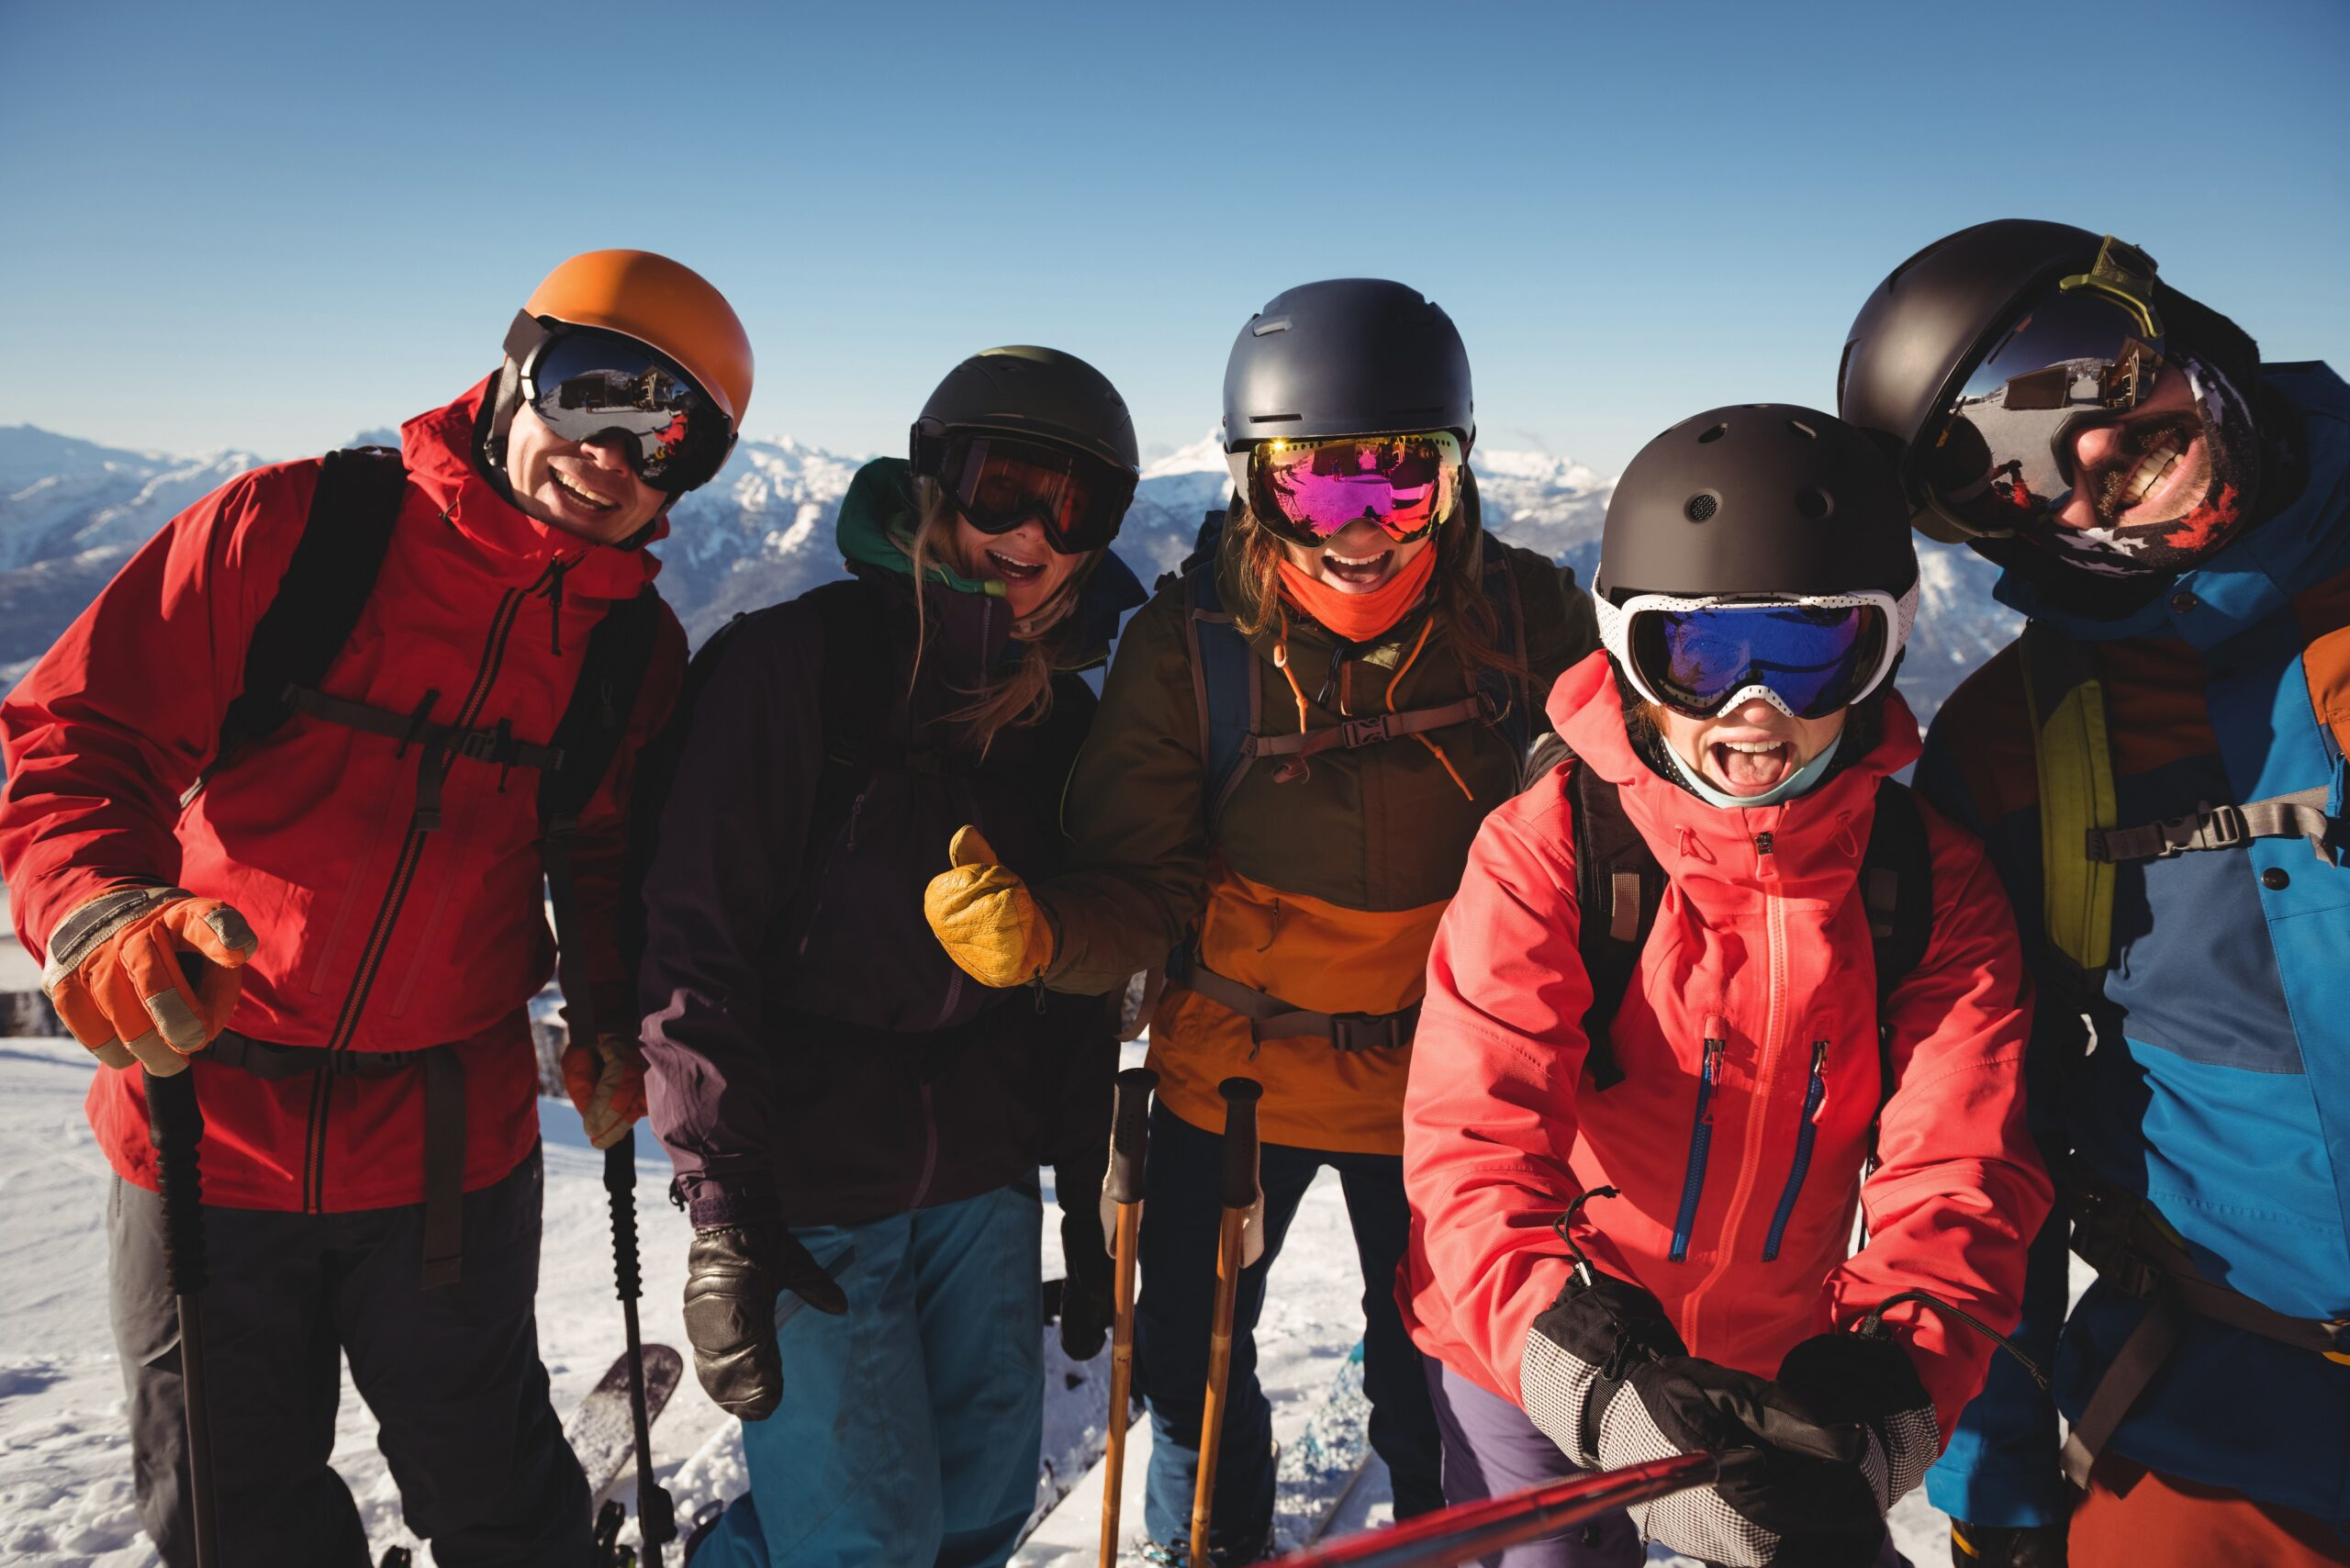 Skiing beginners: ski is also to have fun. Friends having fun while skiing.